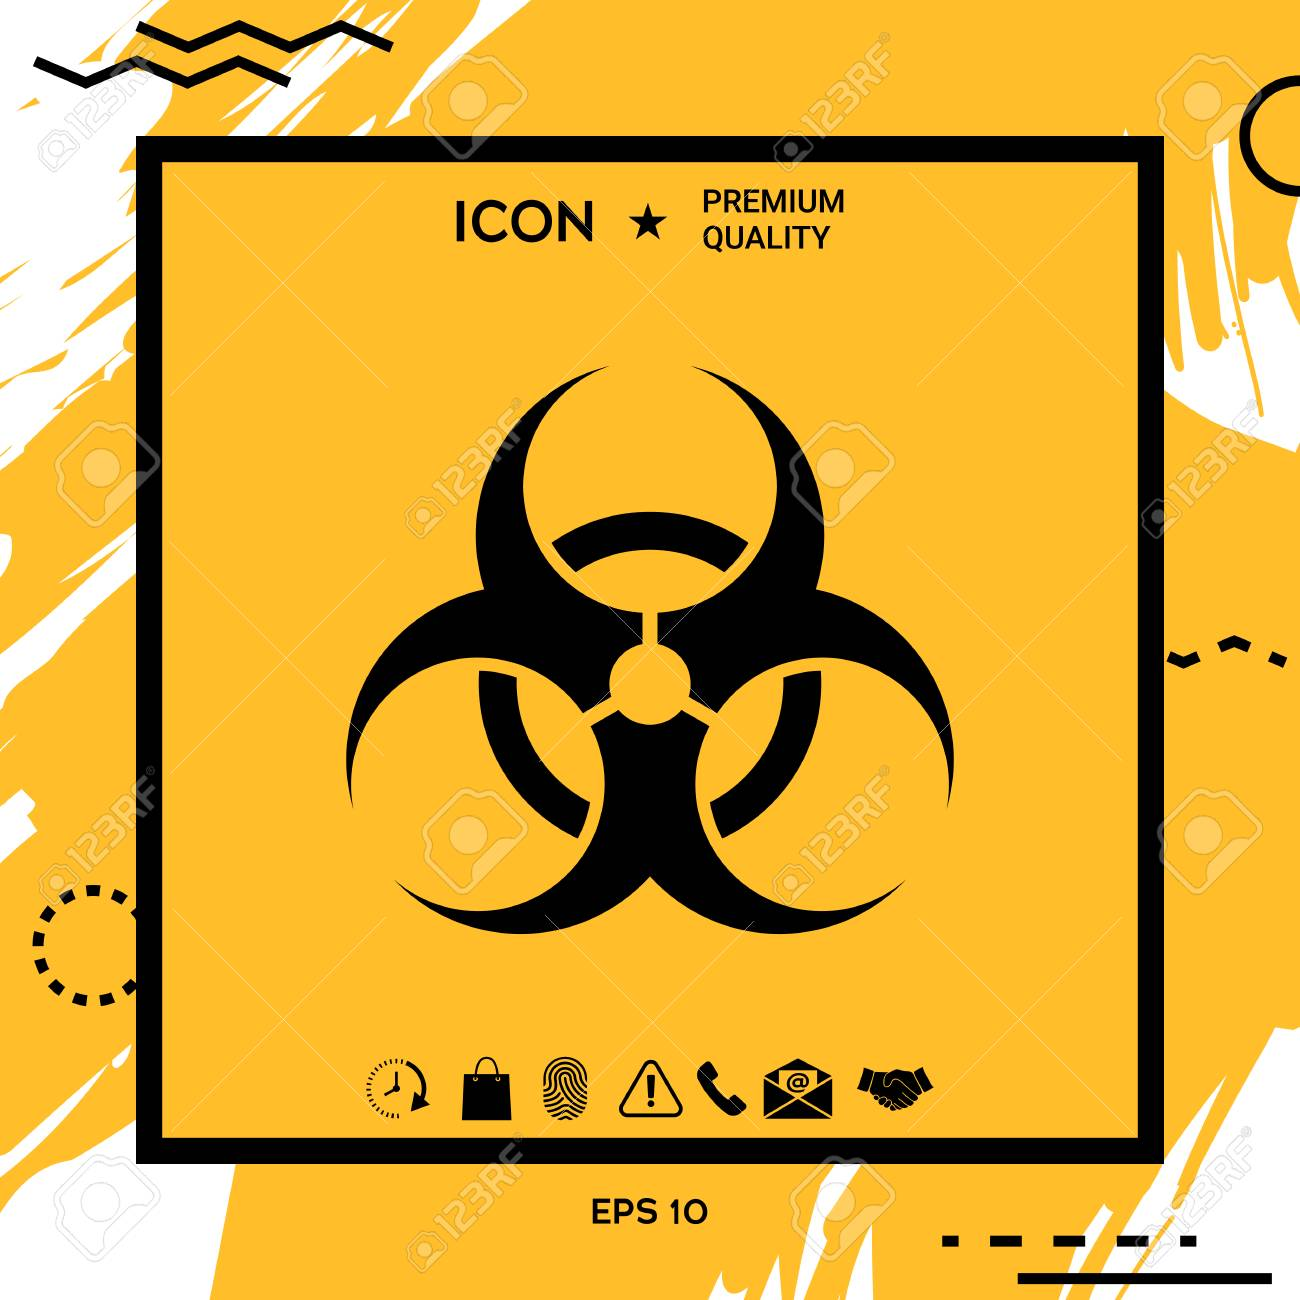 biological hazard sign royalty free cliparts vectors and stock